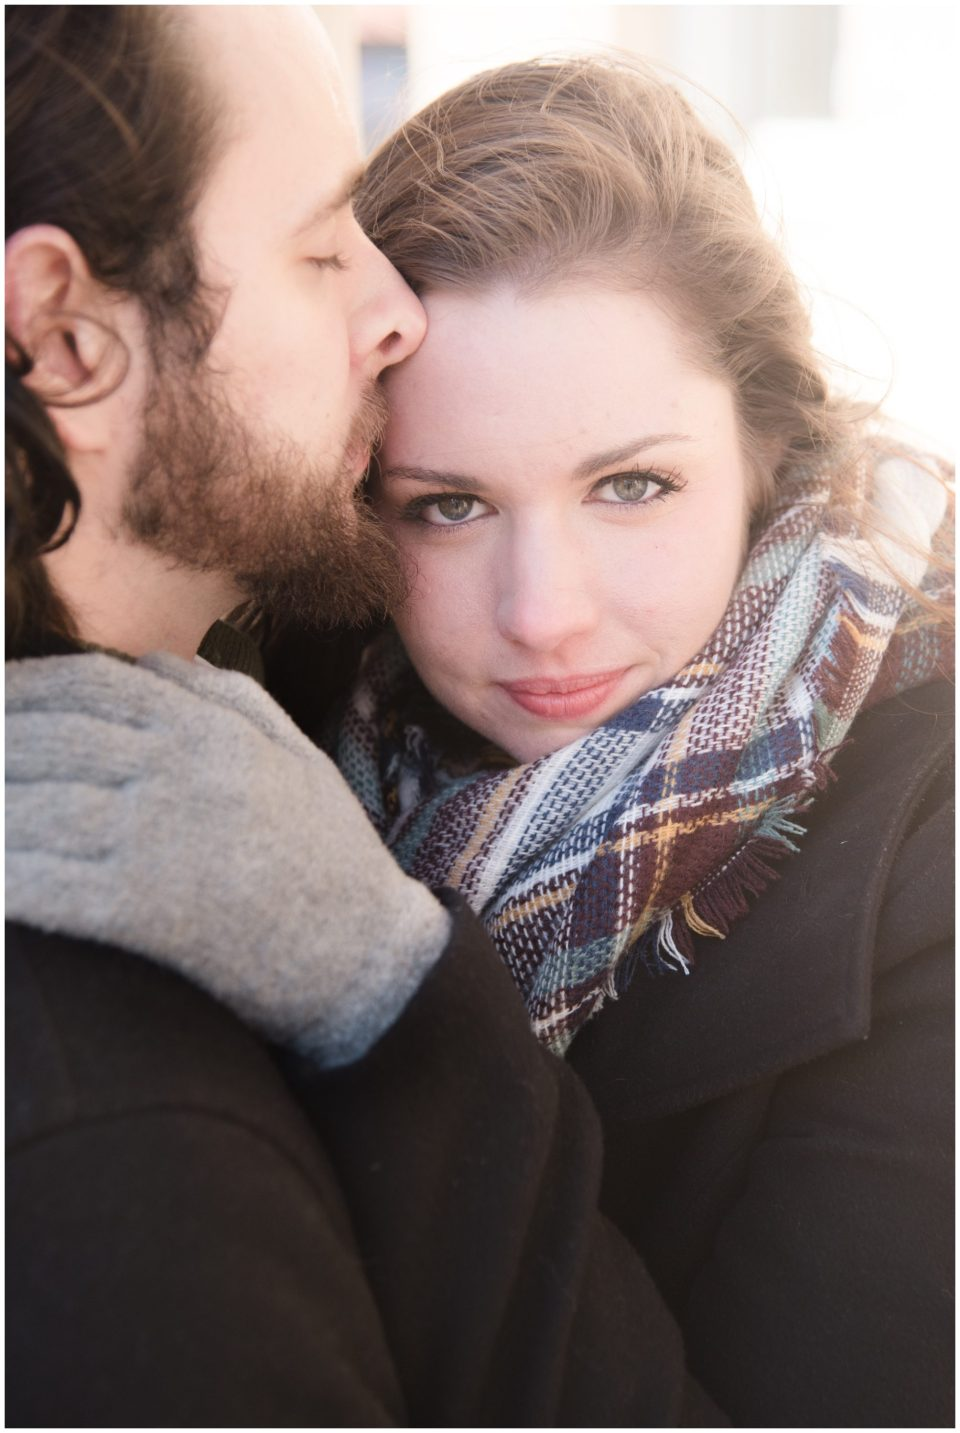 daniel-jackson-studios-harrisonburg-virginia-wedding-engagement-photographer-winter-14.jpg